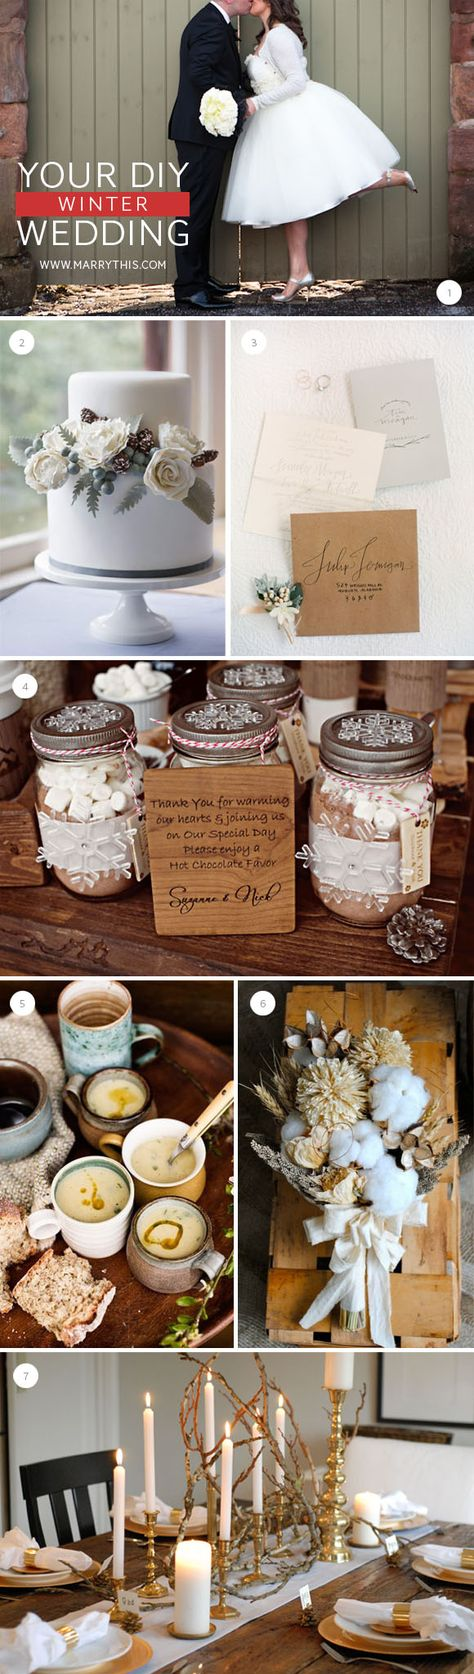 This is my wedding! S'mores and Picnic Cafe hot chocolate...